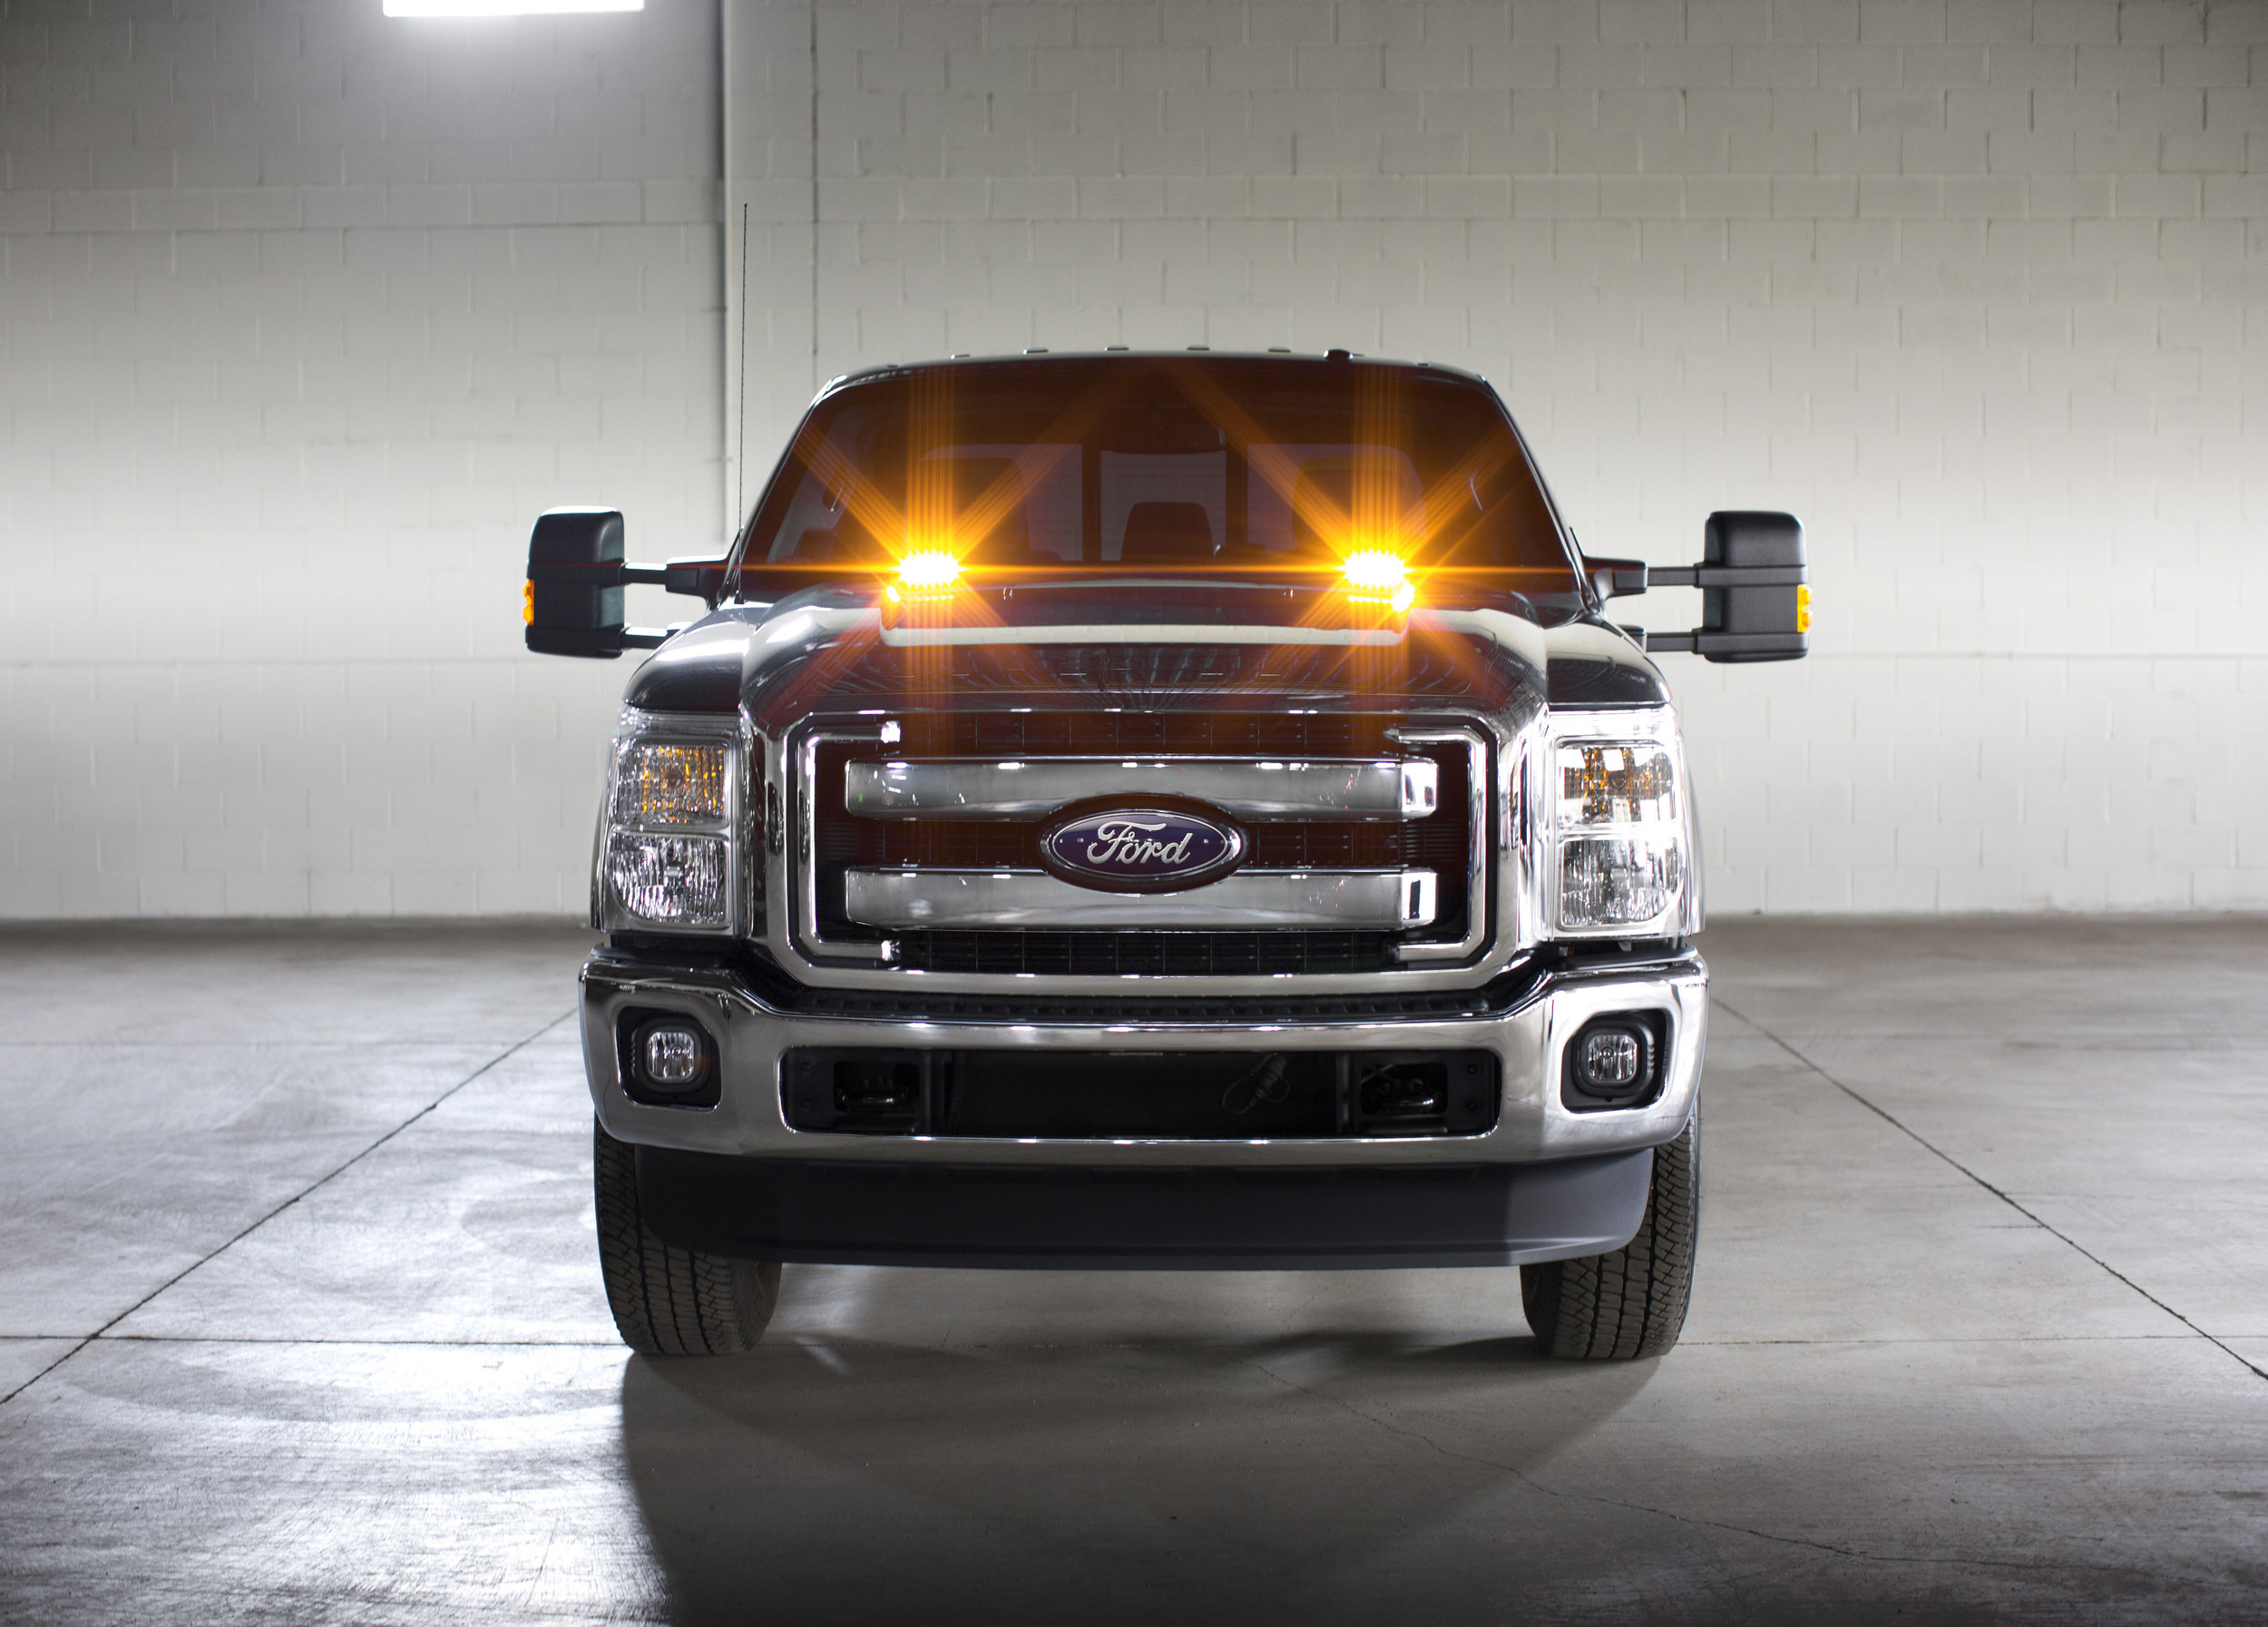 2017 ford f series super duty first drive autoblog ford f series super duty led strobe lights